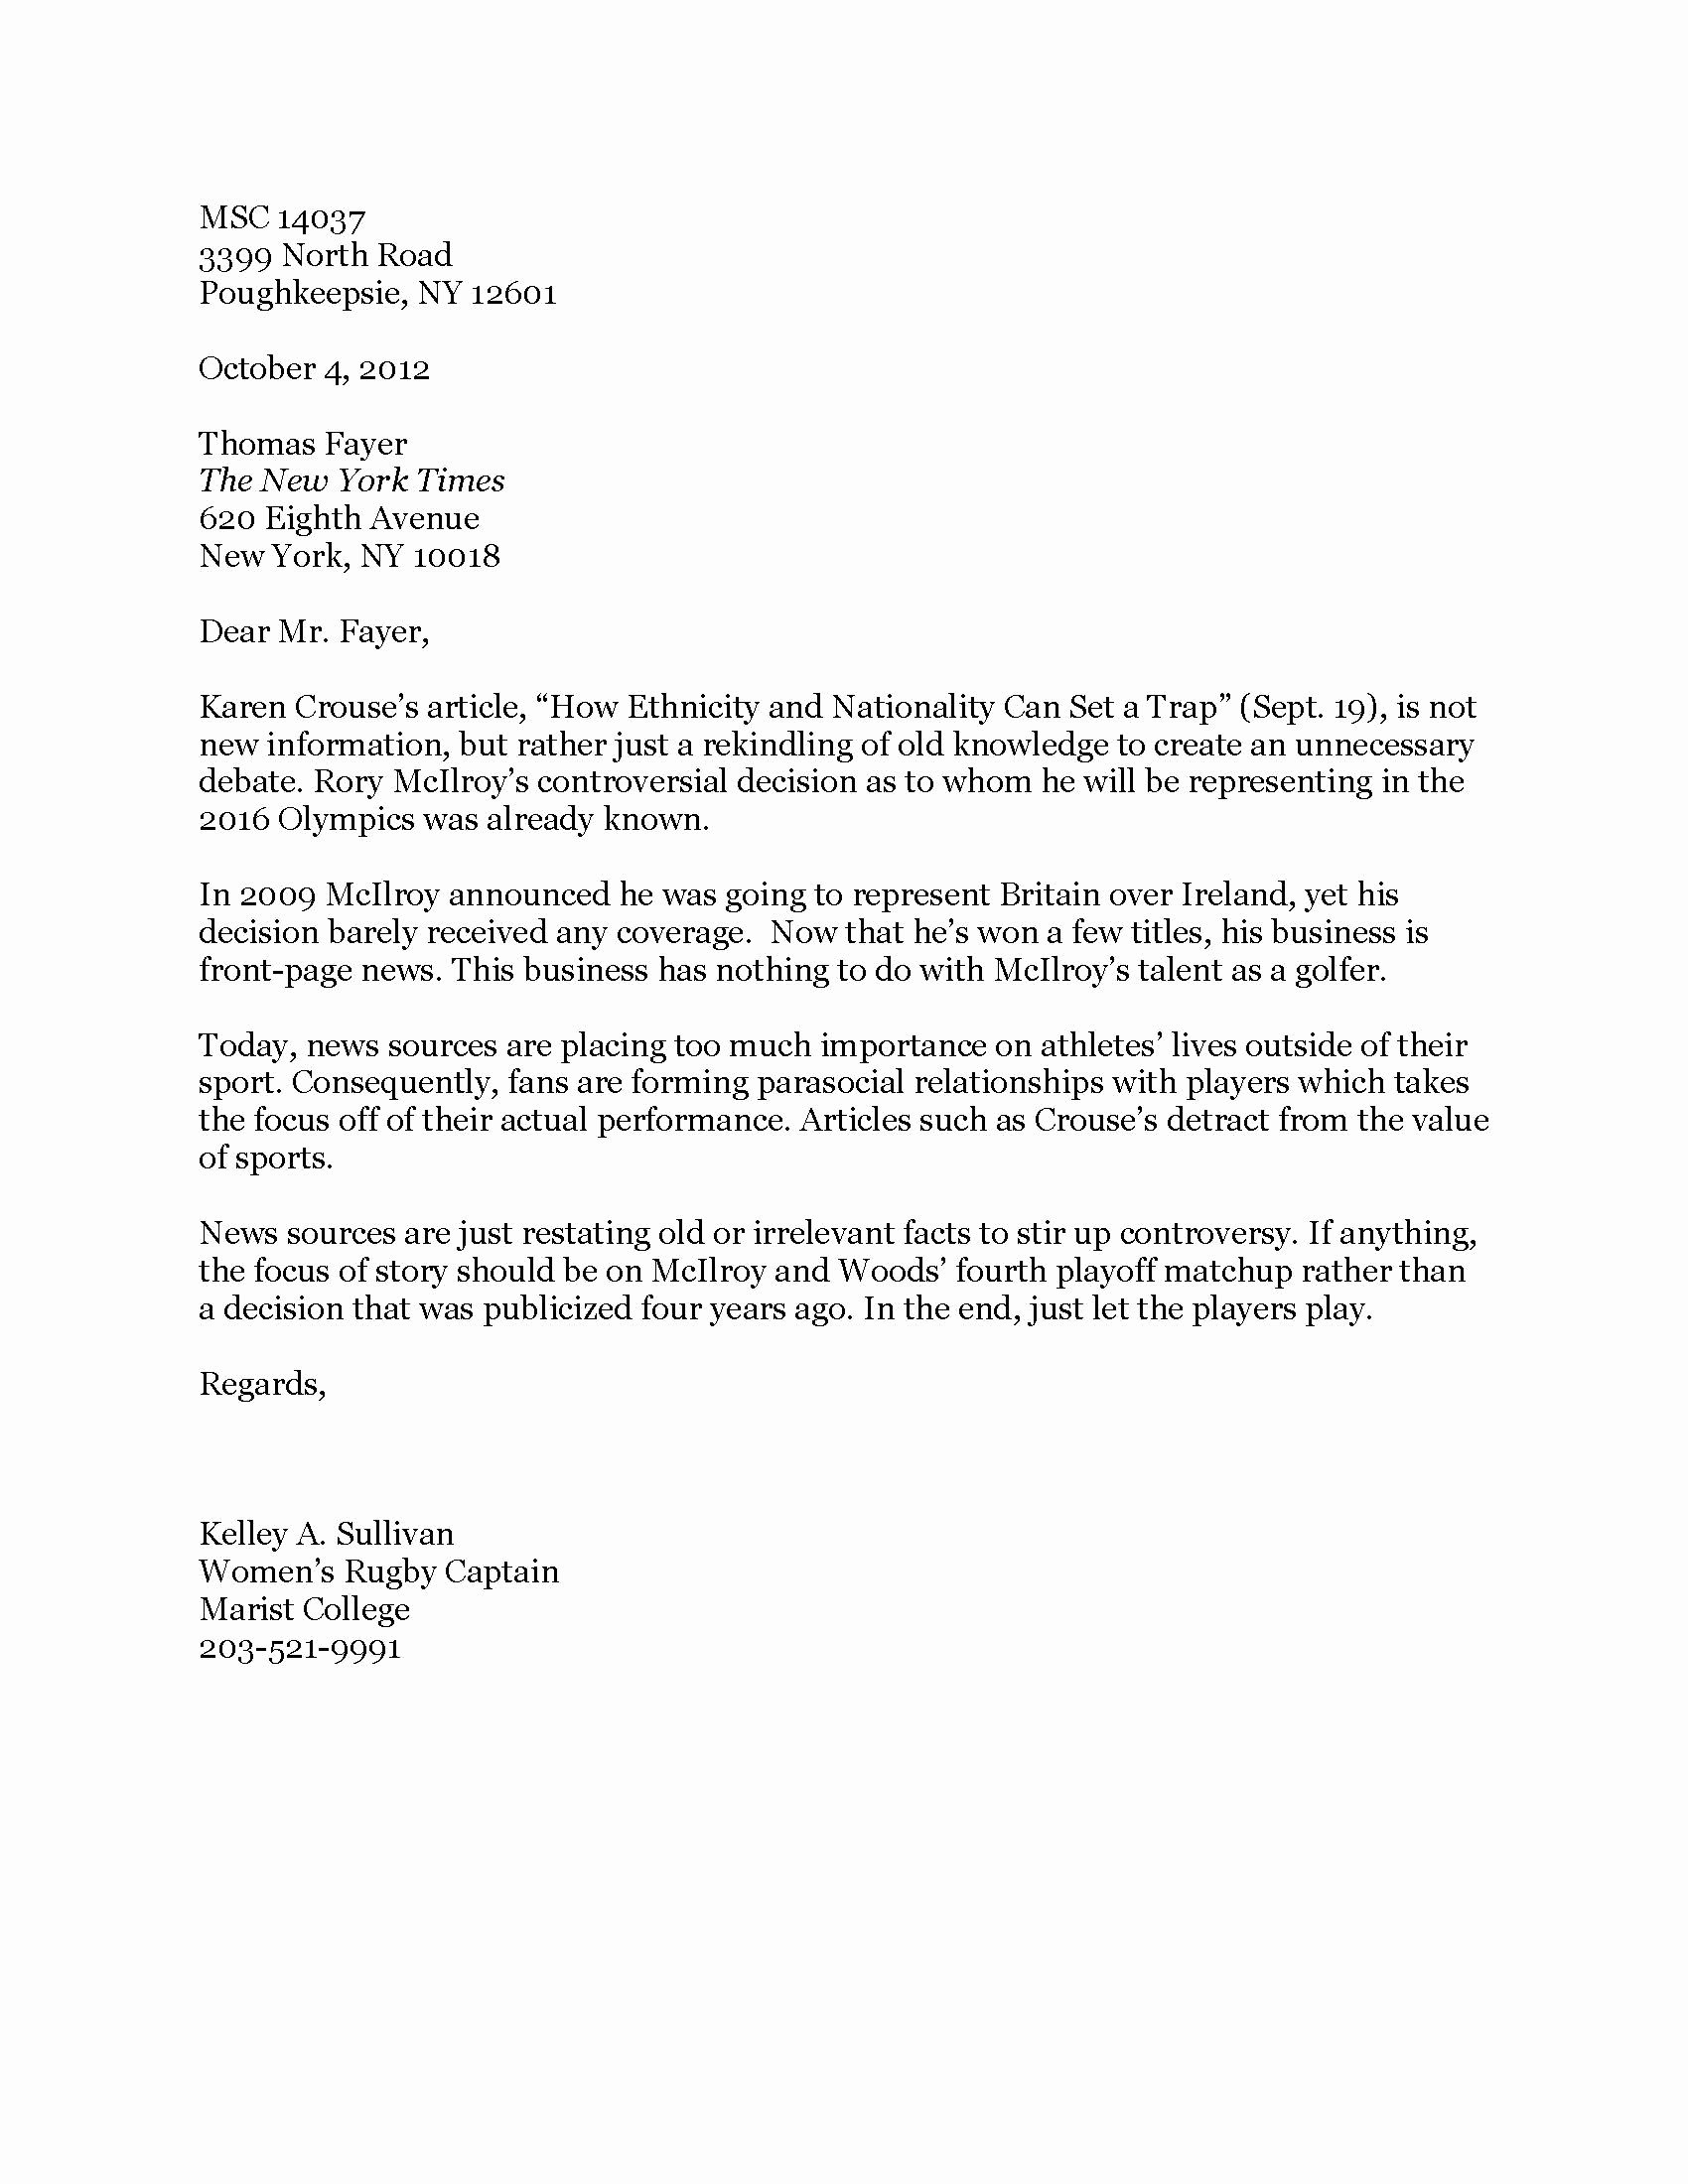 New York Times Newspaper Template Unique Letter to the Editor